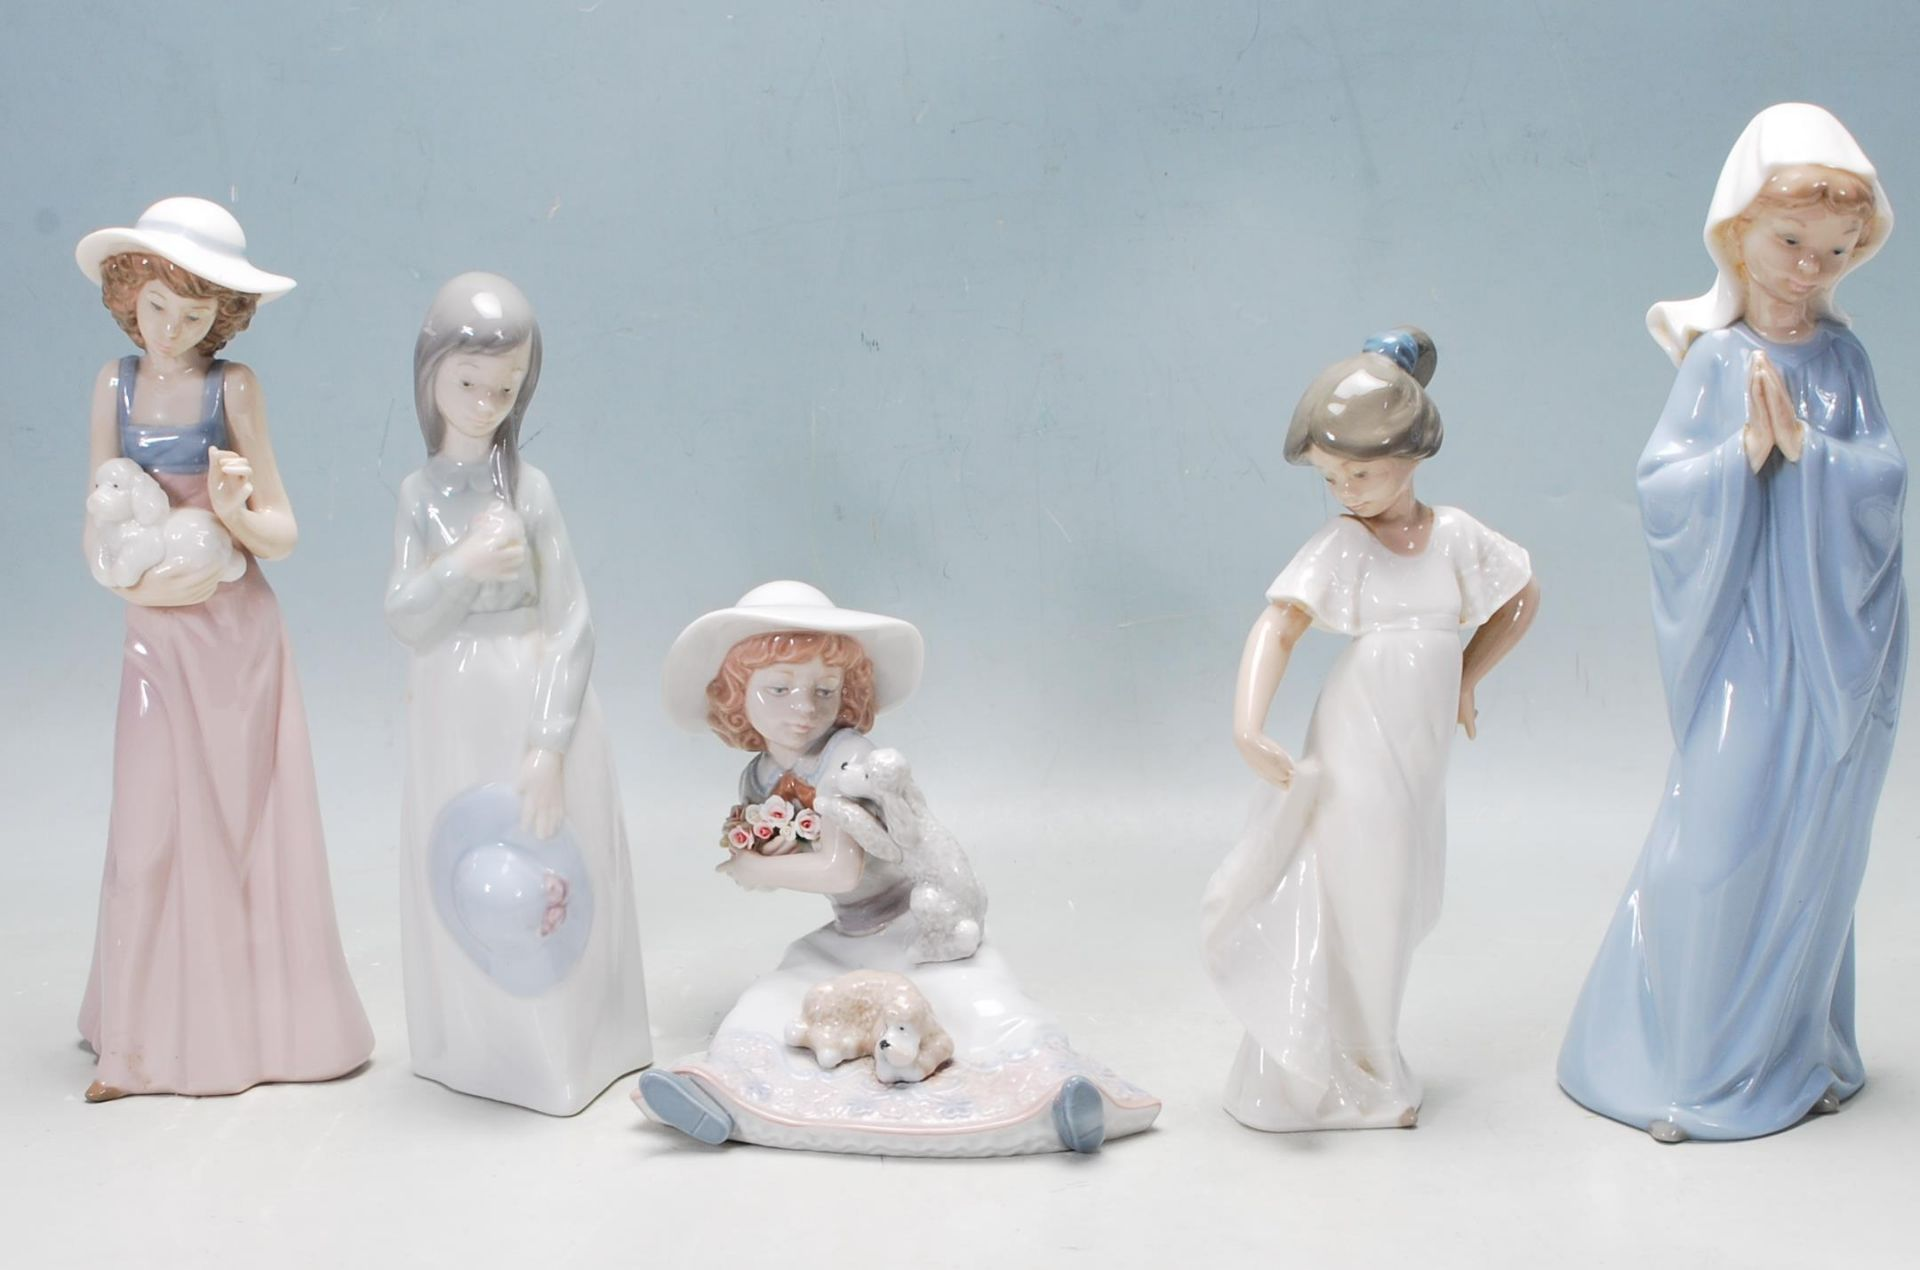 COLLECTION OF LATE 20TH CENTURY NAO FIGURINES - Image 2 of 10